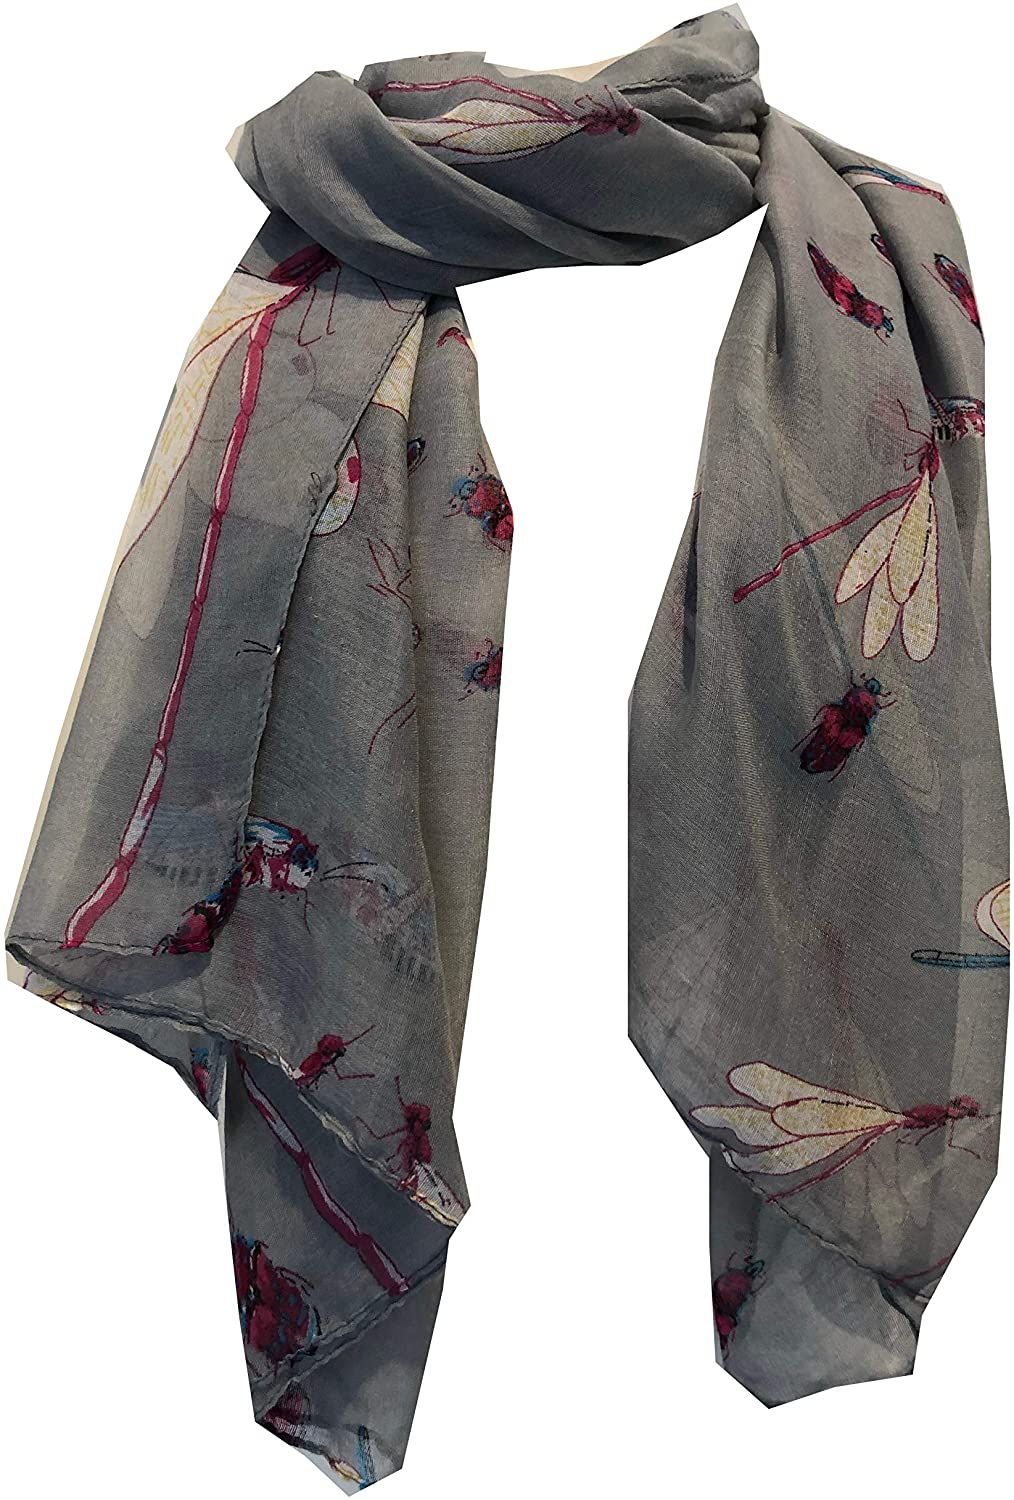 Pamper Yourself Now Grey with Dragonfly and Bugs Design Long Soft Scarf, Great Present/Gift.